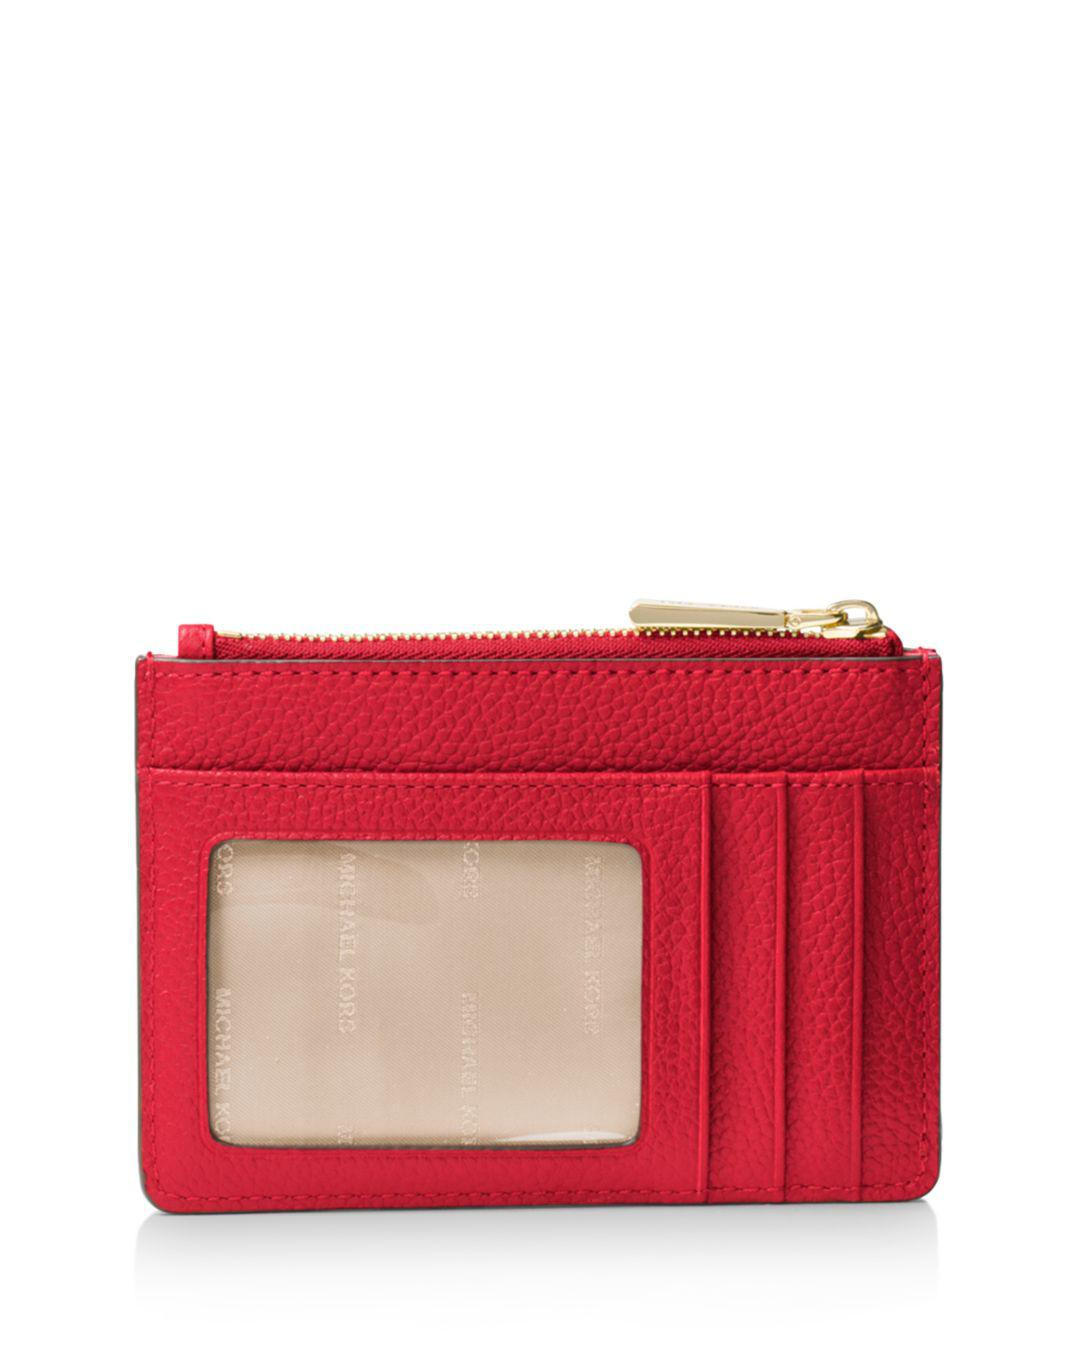 13b9fe17669b5 Michael Michael Kors Small Leather Wristlet in Red - Lyst